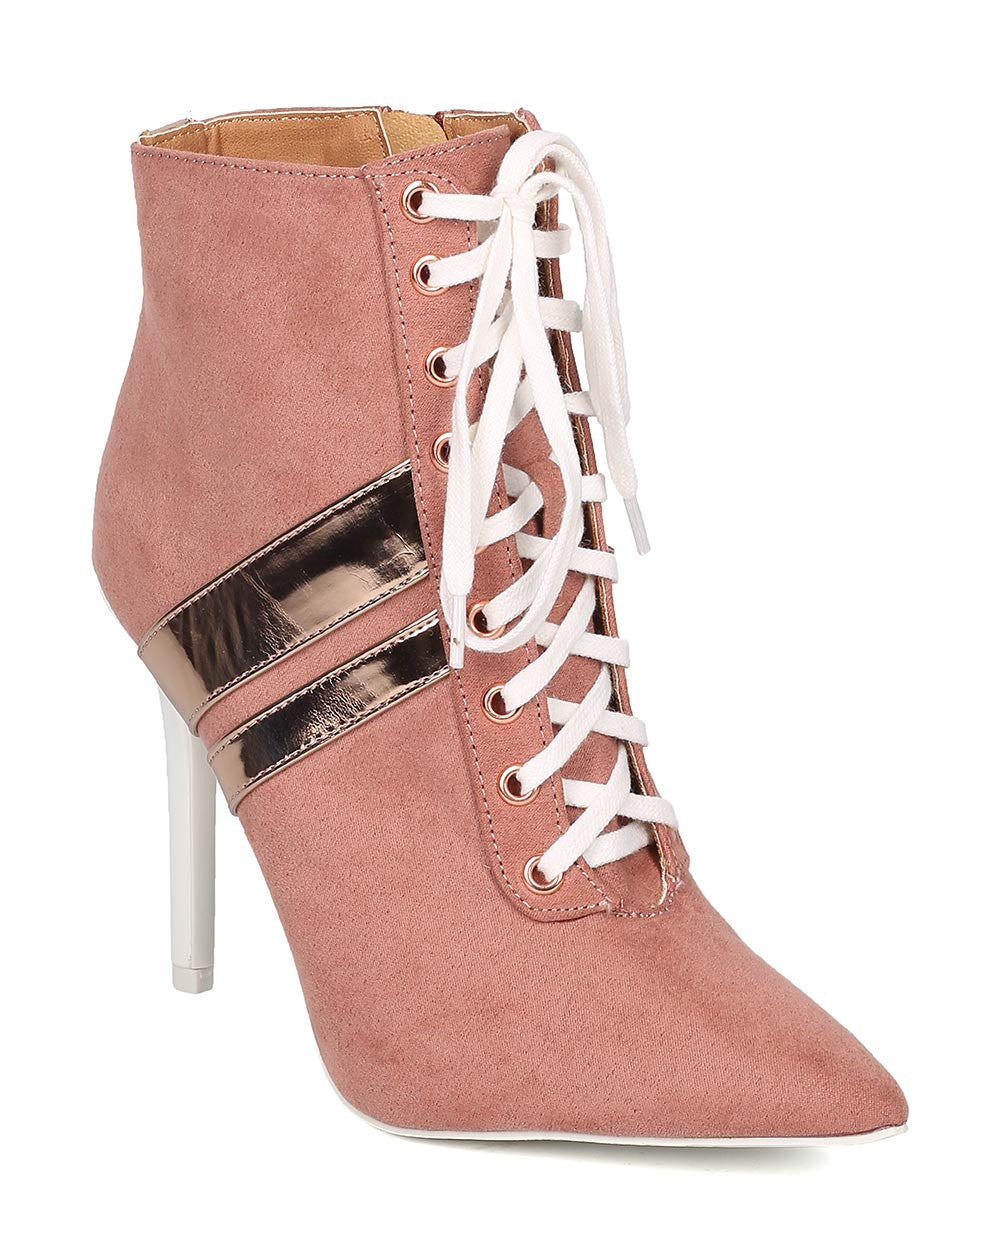 CherryMad Qupid Milia-58 Pink Striped Sporty Heels Pointy Ankle Boost